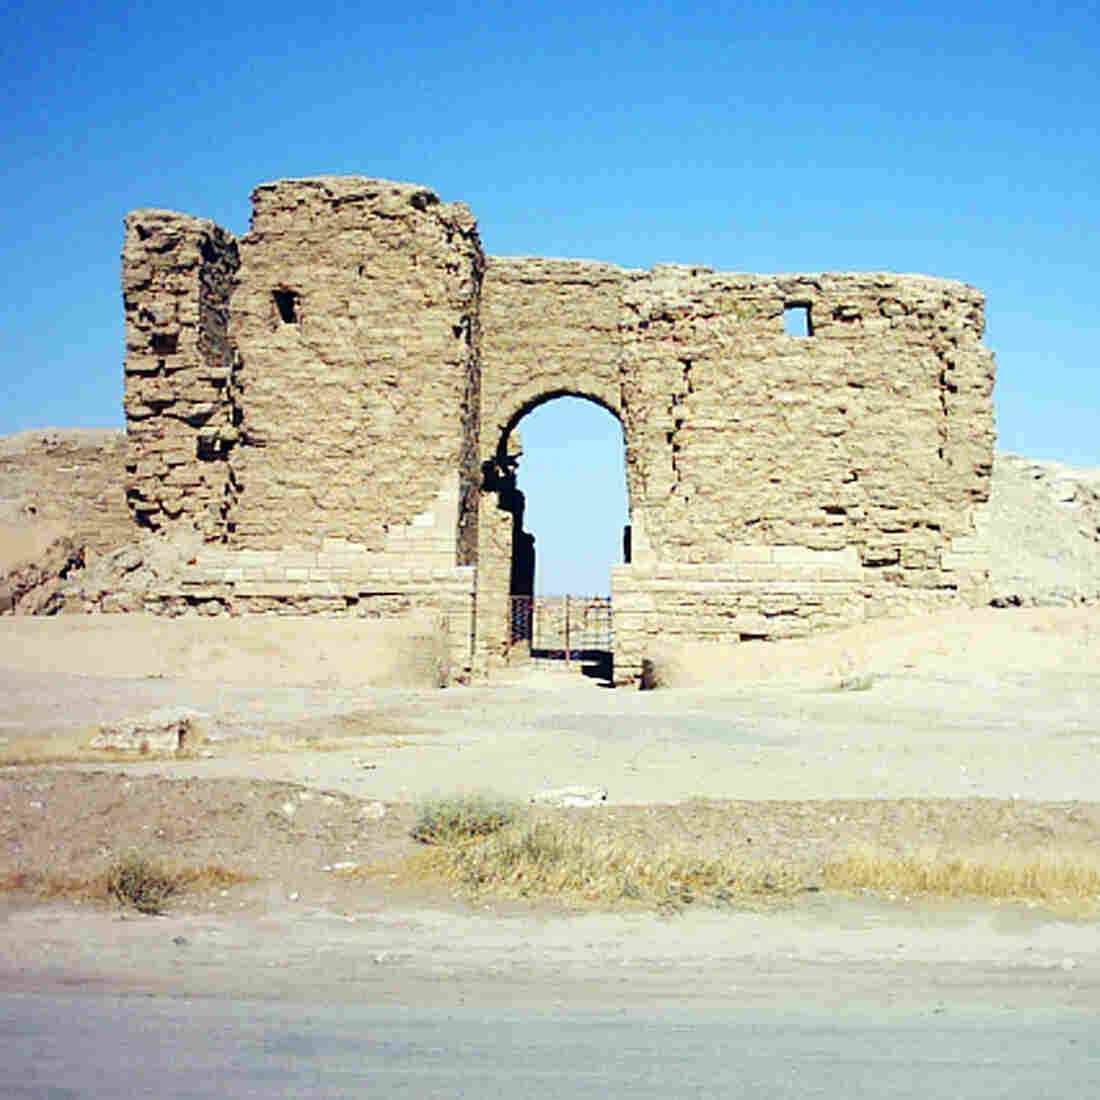 Dura Europos, a Roman walled city in eastern Syria, dates back to 330 B.C. The main gate is shown here in a photo from 2010. It's one of the many important archaeological sites militants of the self-styled Islamic State have ransacked and damaged.